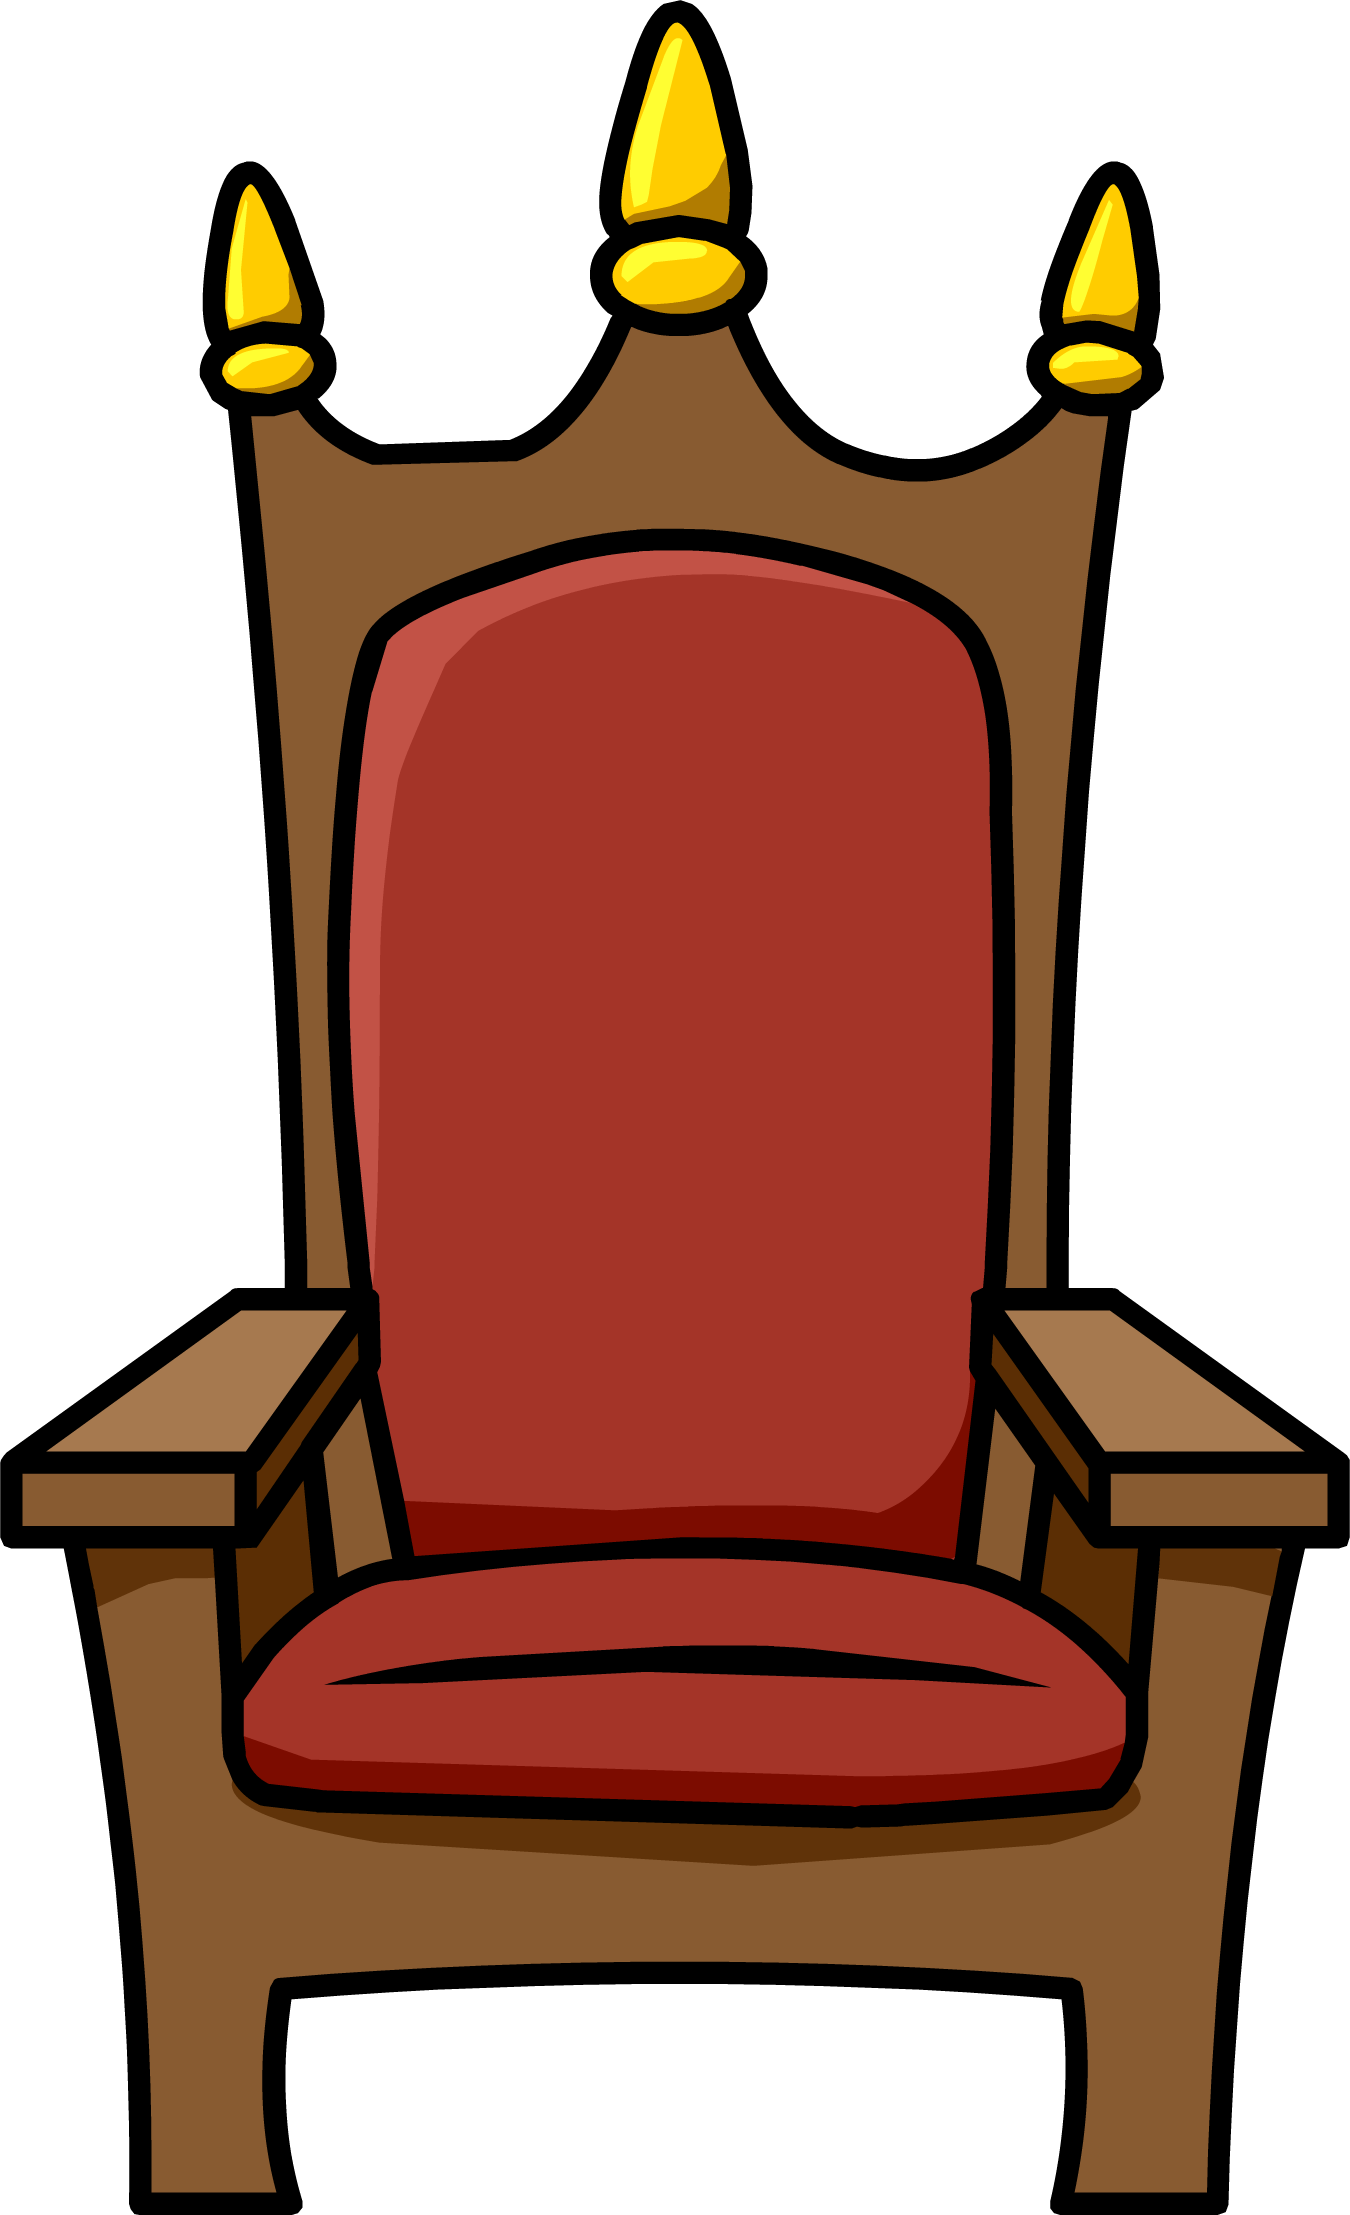 Throne png. Image royal club penguin